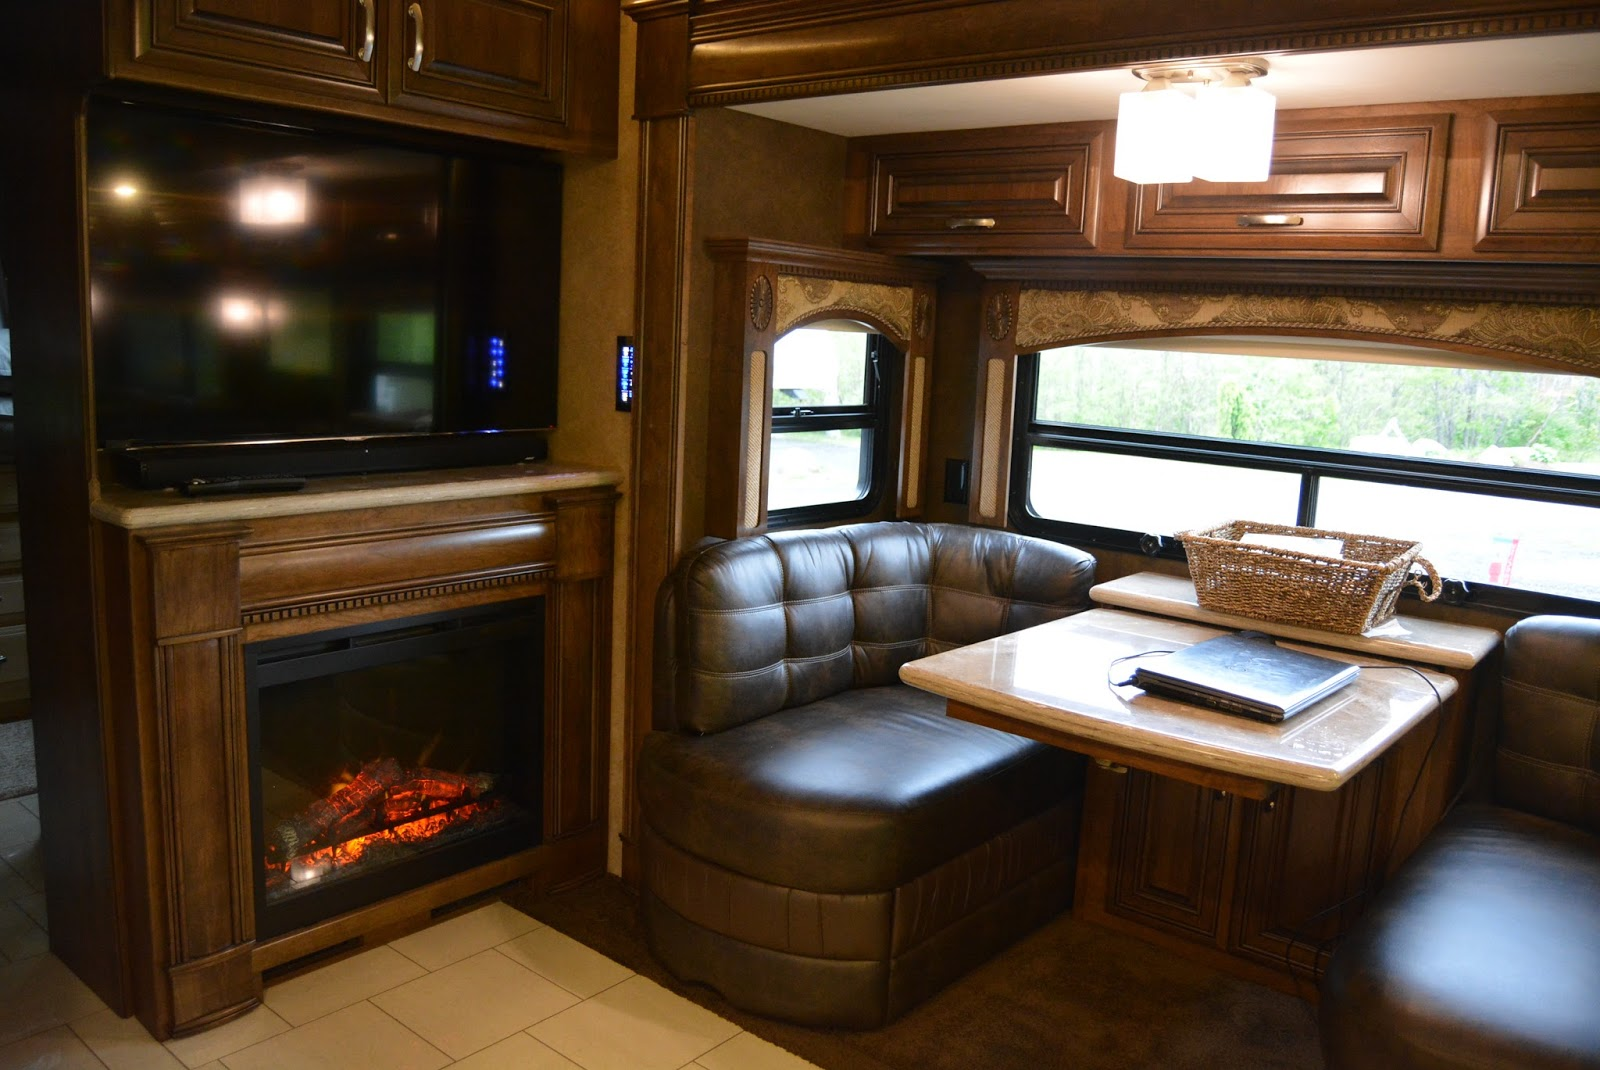 RV-A-GOGO: Our Motorhome